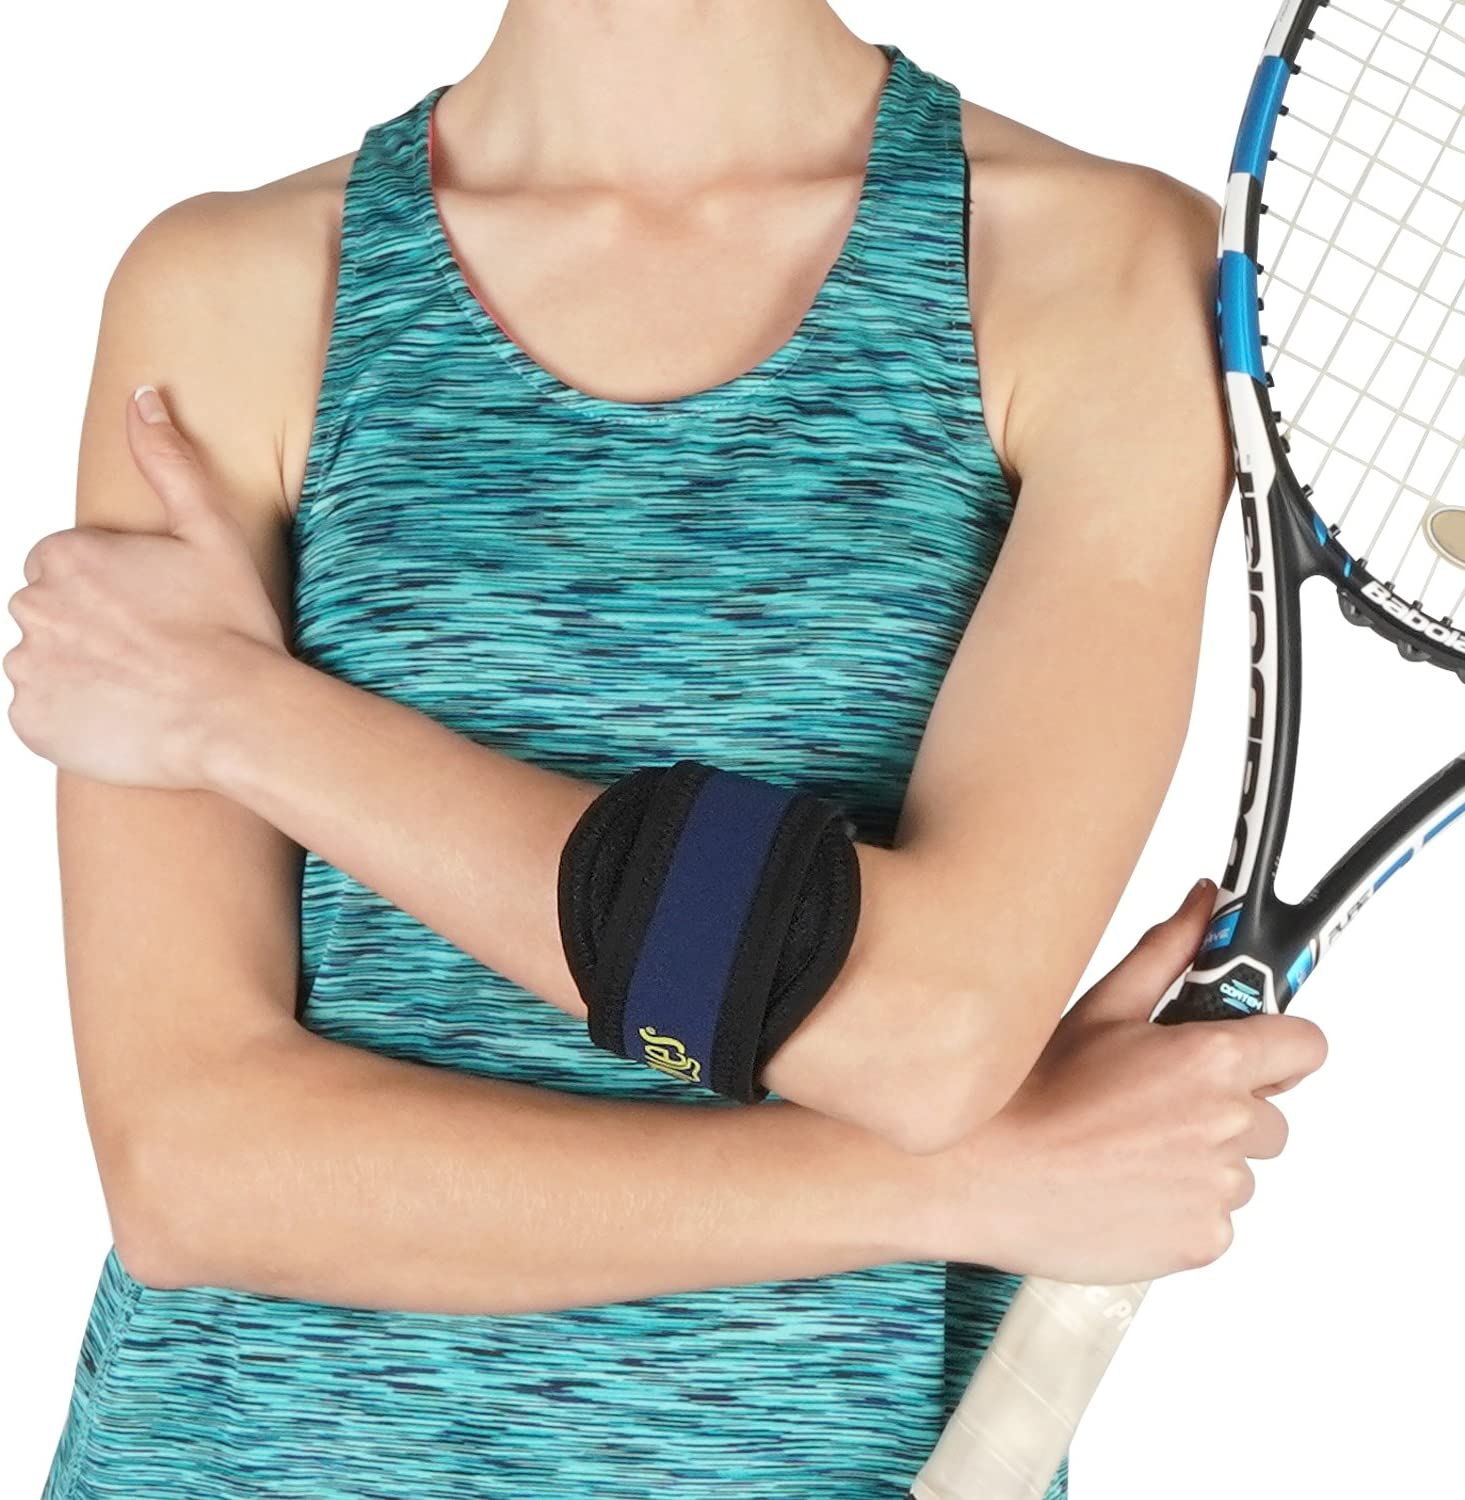 Soles Tennis and Golfer Online limited product Elbow Strap Ranking TOP7 One SLS509 Brace 1. Size